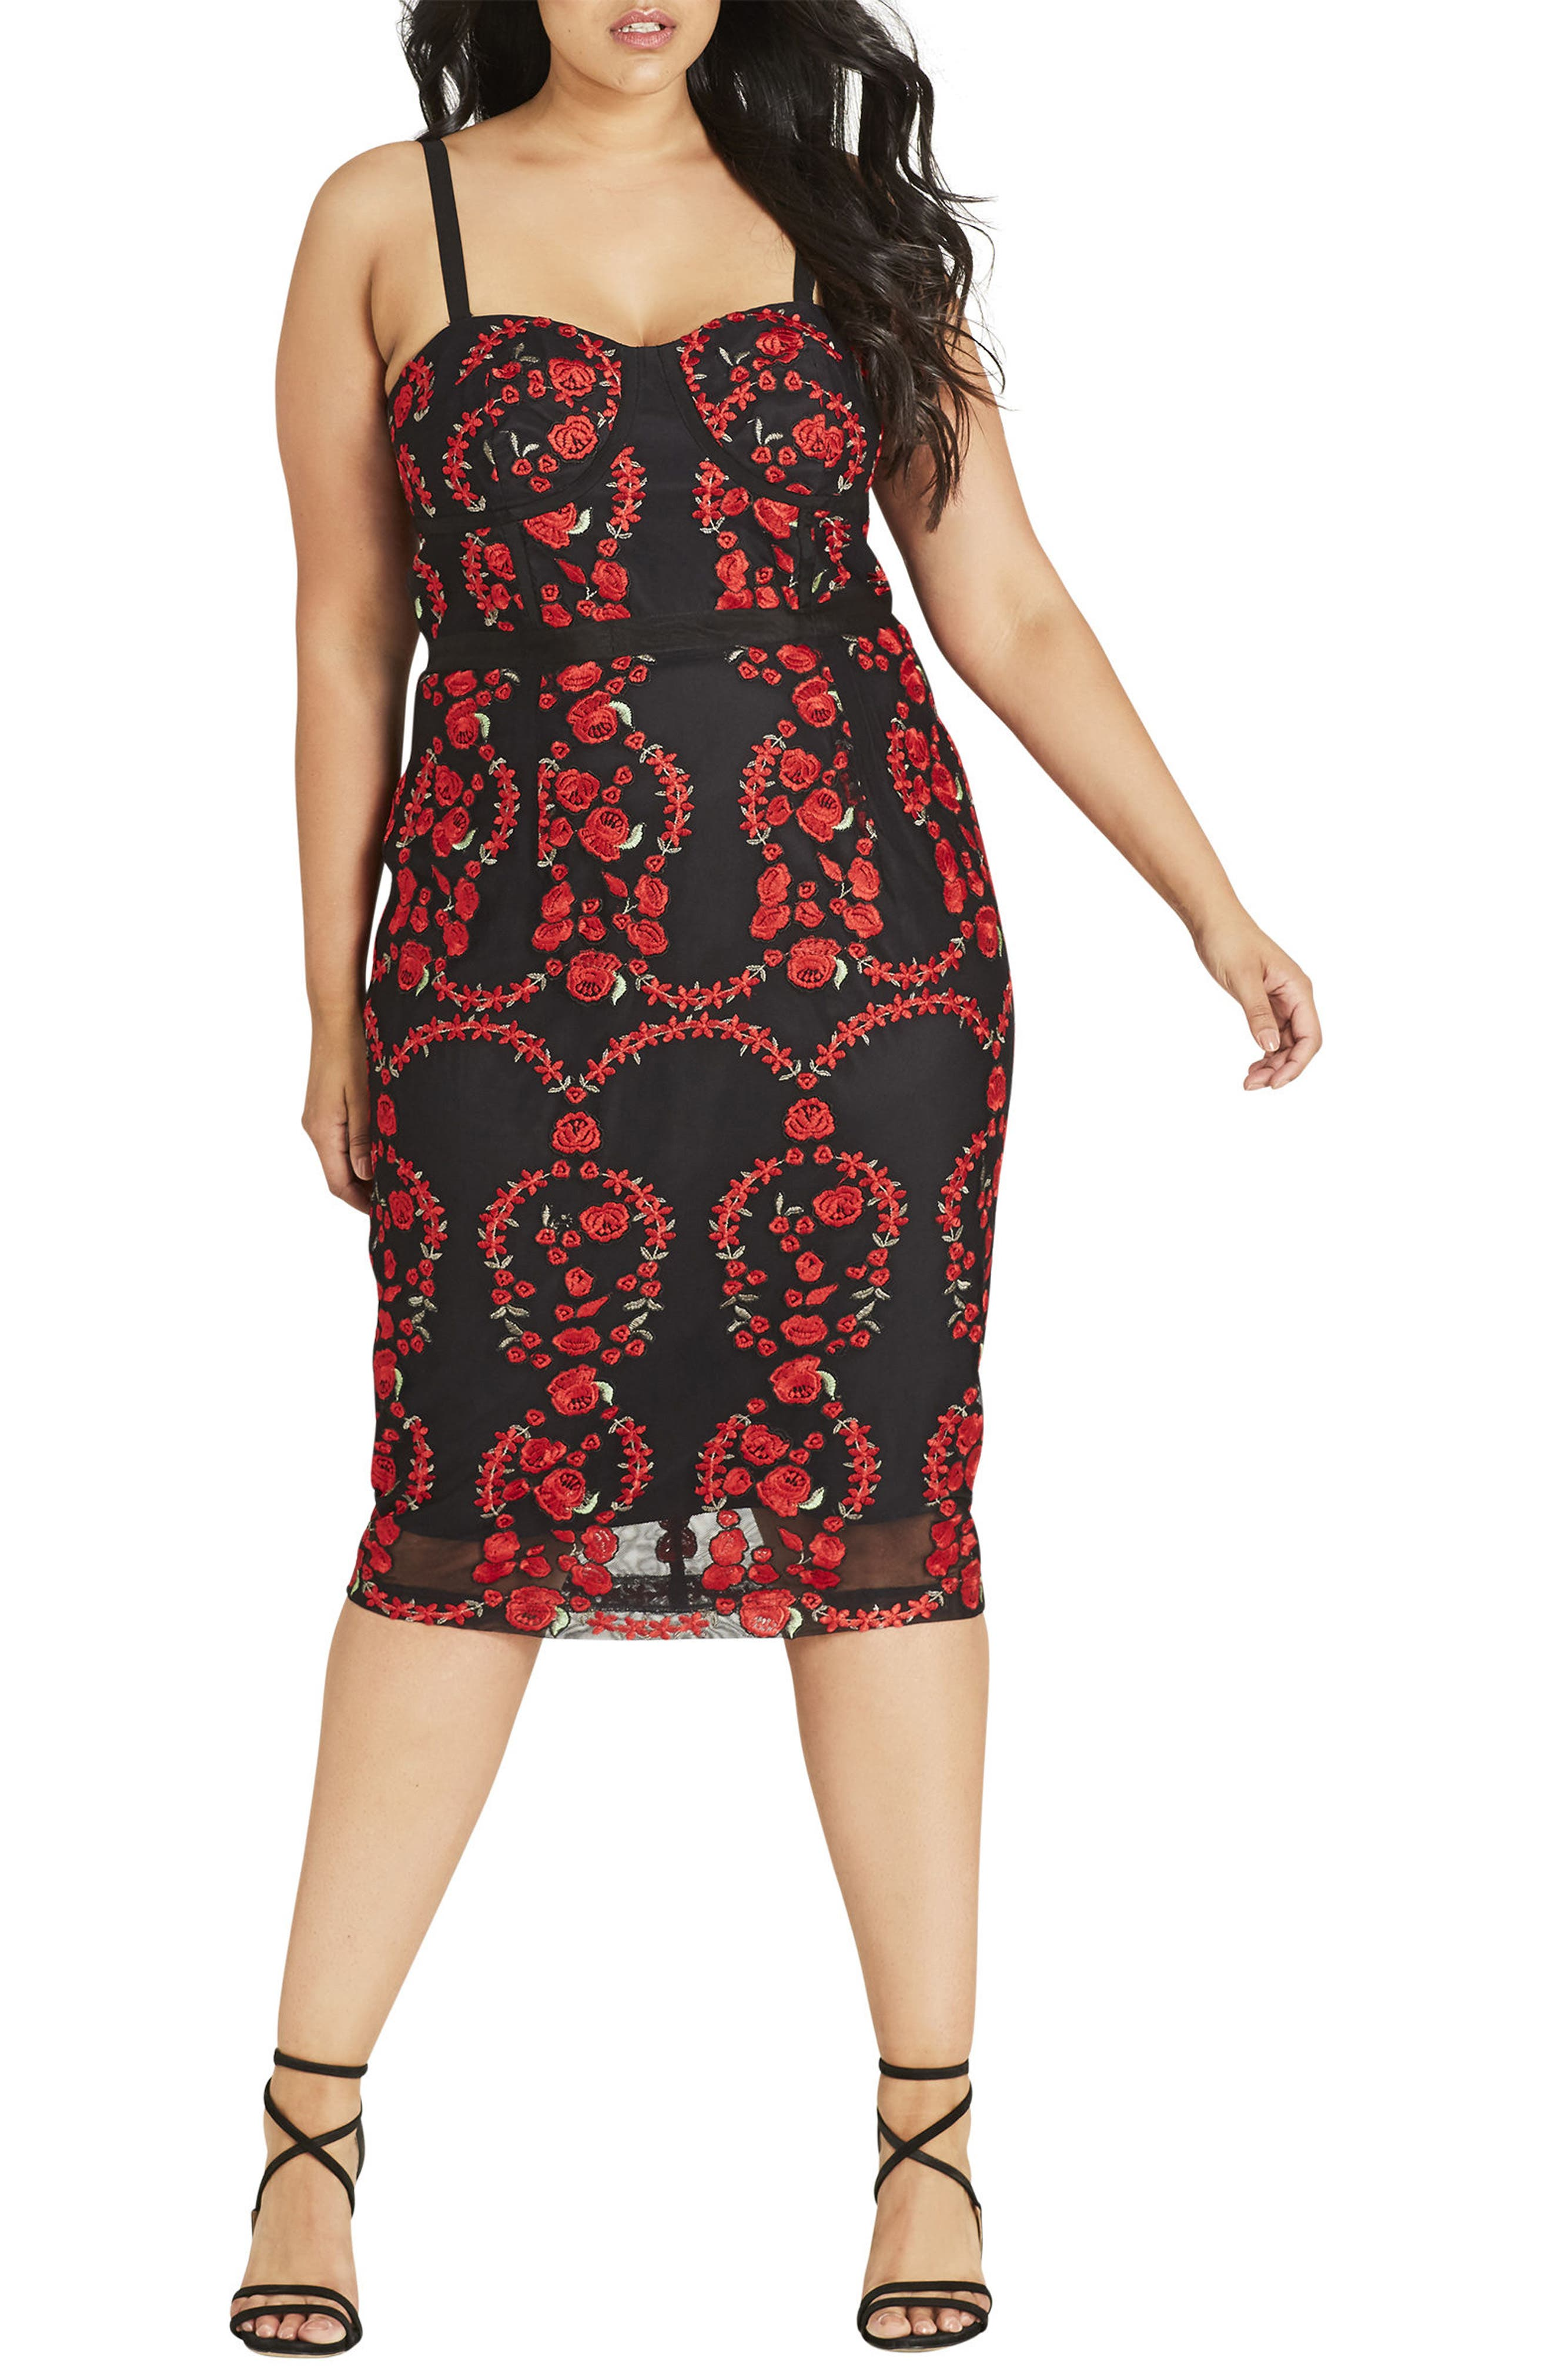 CITY CHIC, Dolce Rose Embroidered Corset Dress, Main thumbnail 1, color, BLACK